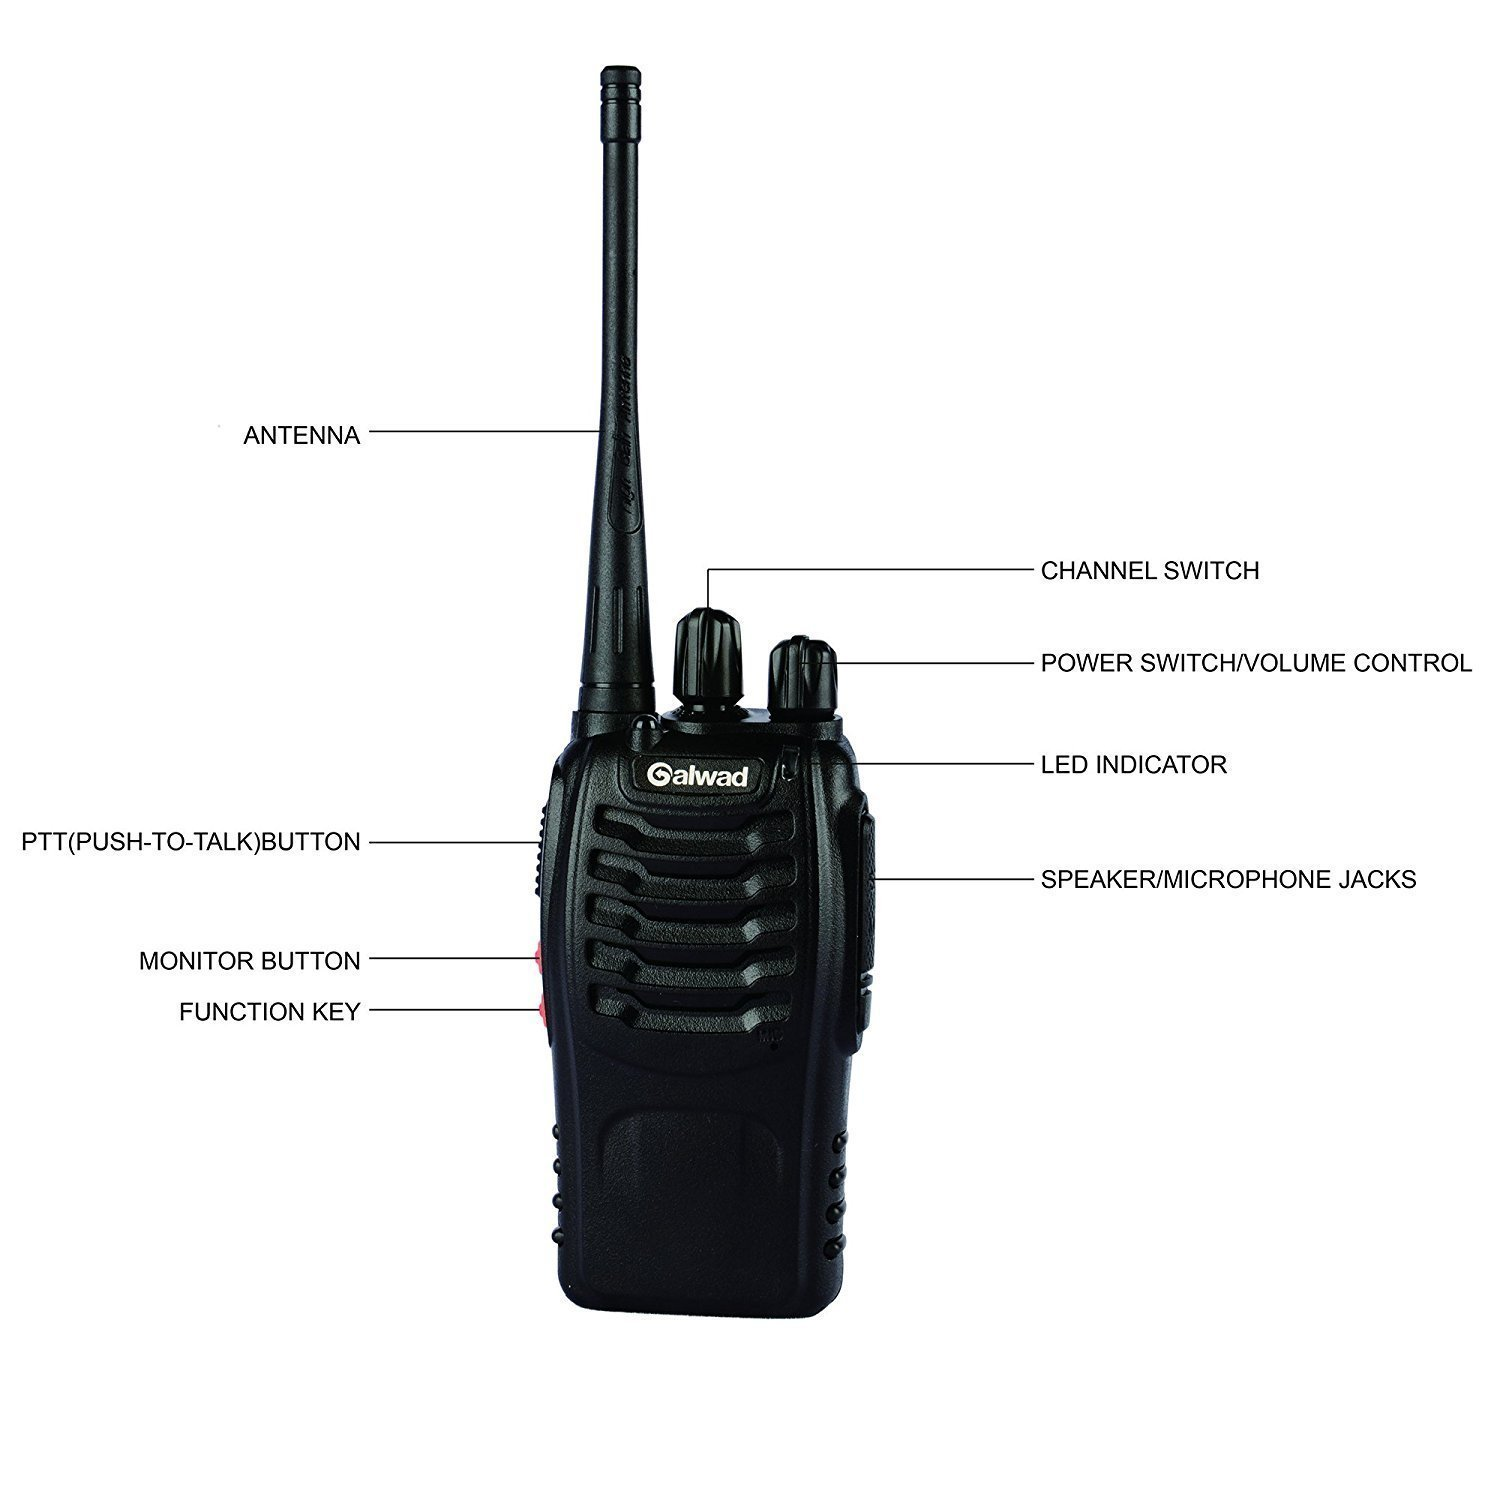 Galwad 888s Walkie Talkie 2pcs In One Box With Two Way Switch Indicator Rechargeable Battery Headphone Wall Charger Long Range 16 Channels Radio Radios